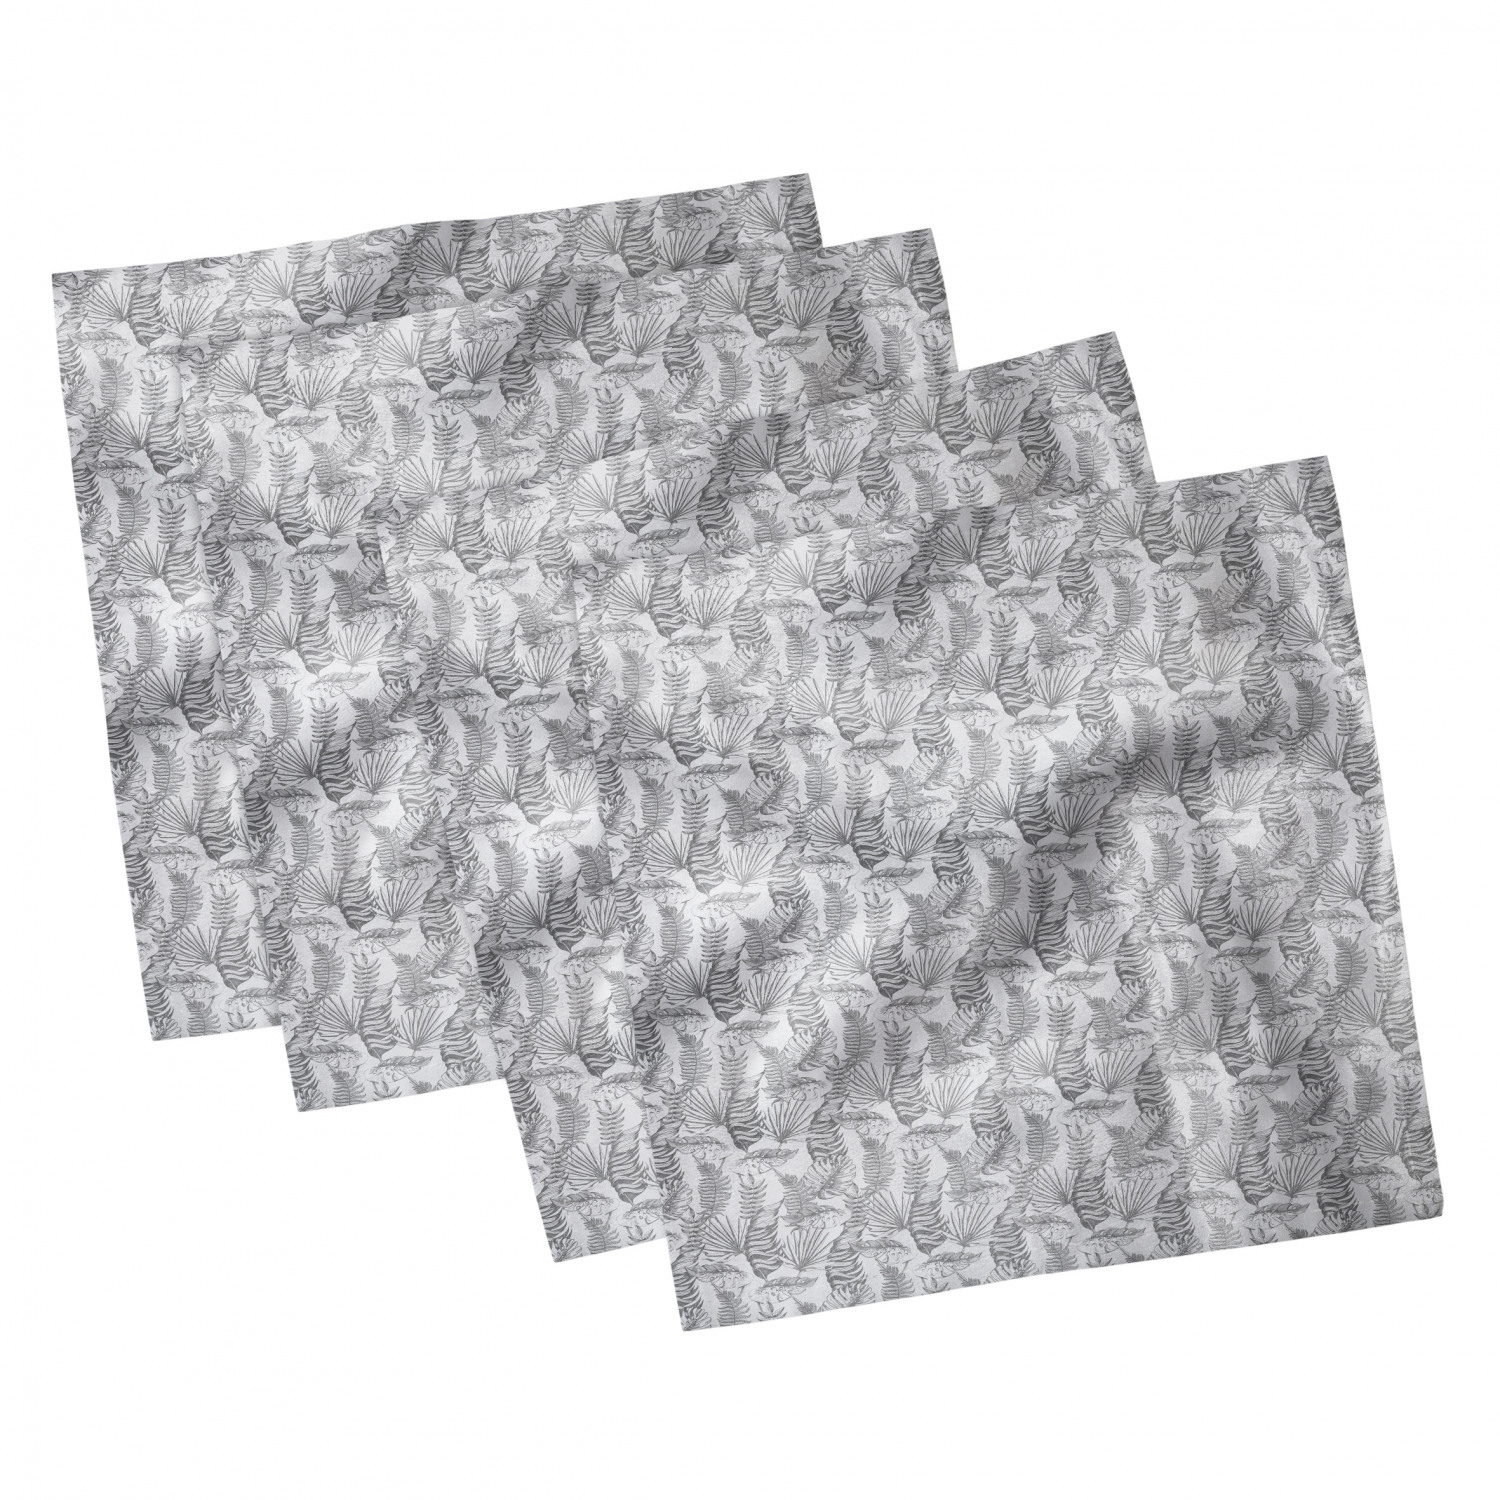 thumbnail 51 - Ambesonne-Leaves-Forest-Decorative-Satin-Napkins-Set-of-4-Party-Dinner-Fabric